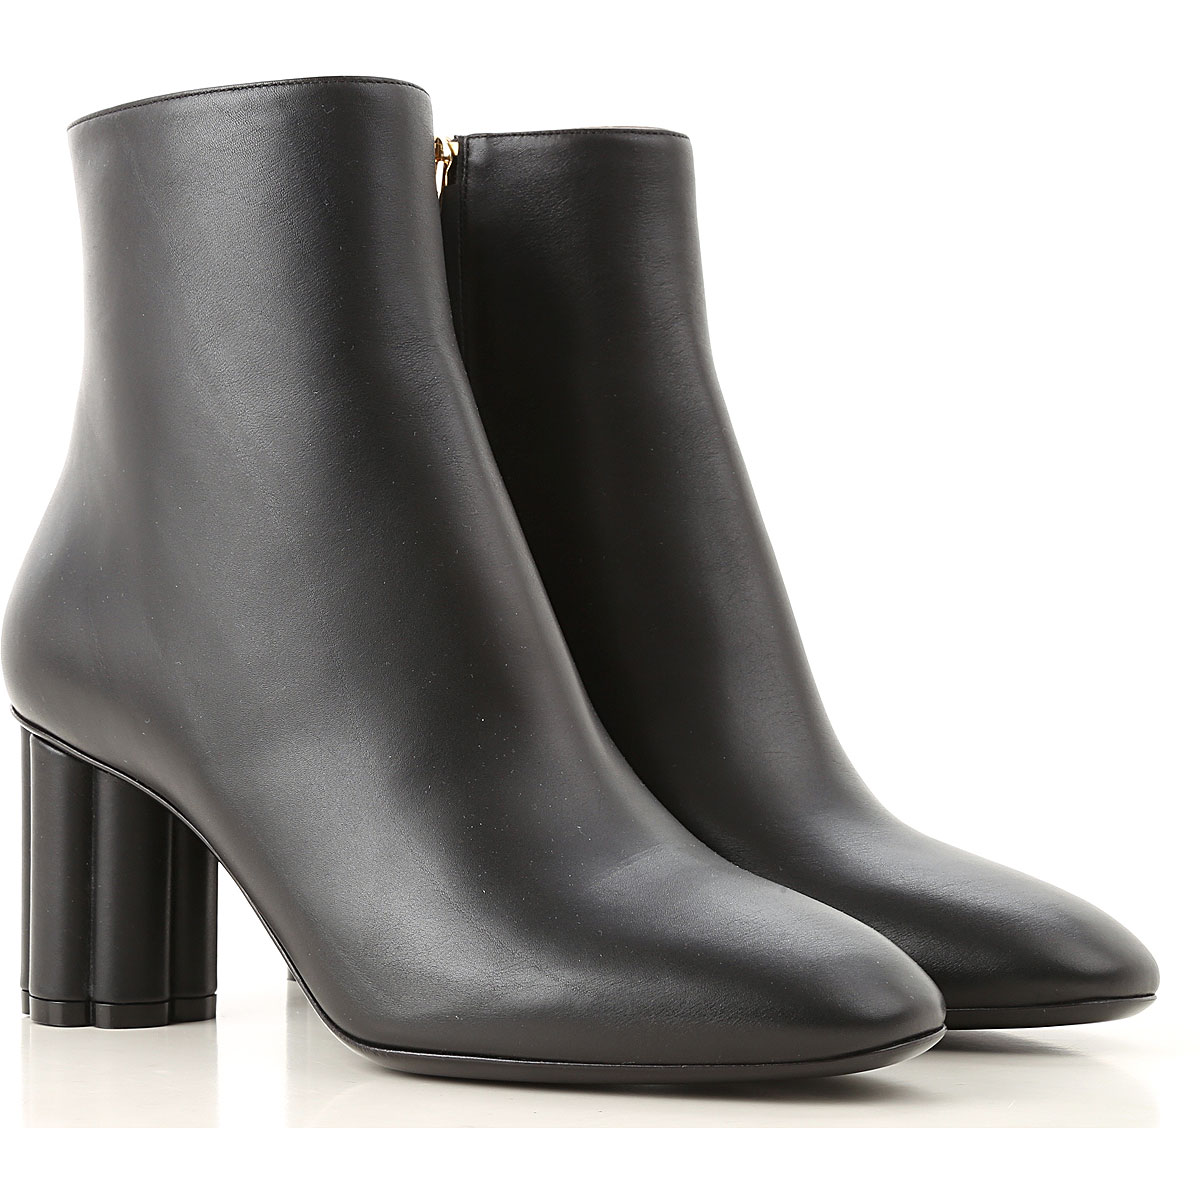 Image of Salvatore Ferragamo Boots for Women, Booties, Black, Leather, 2017, 10 6 7 8 9